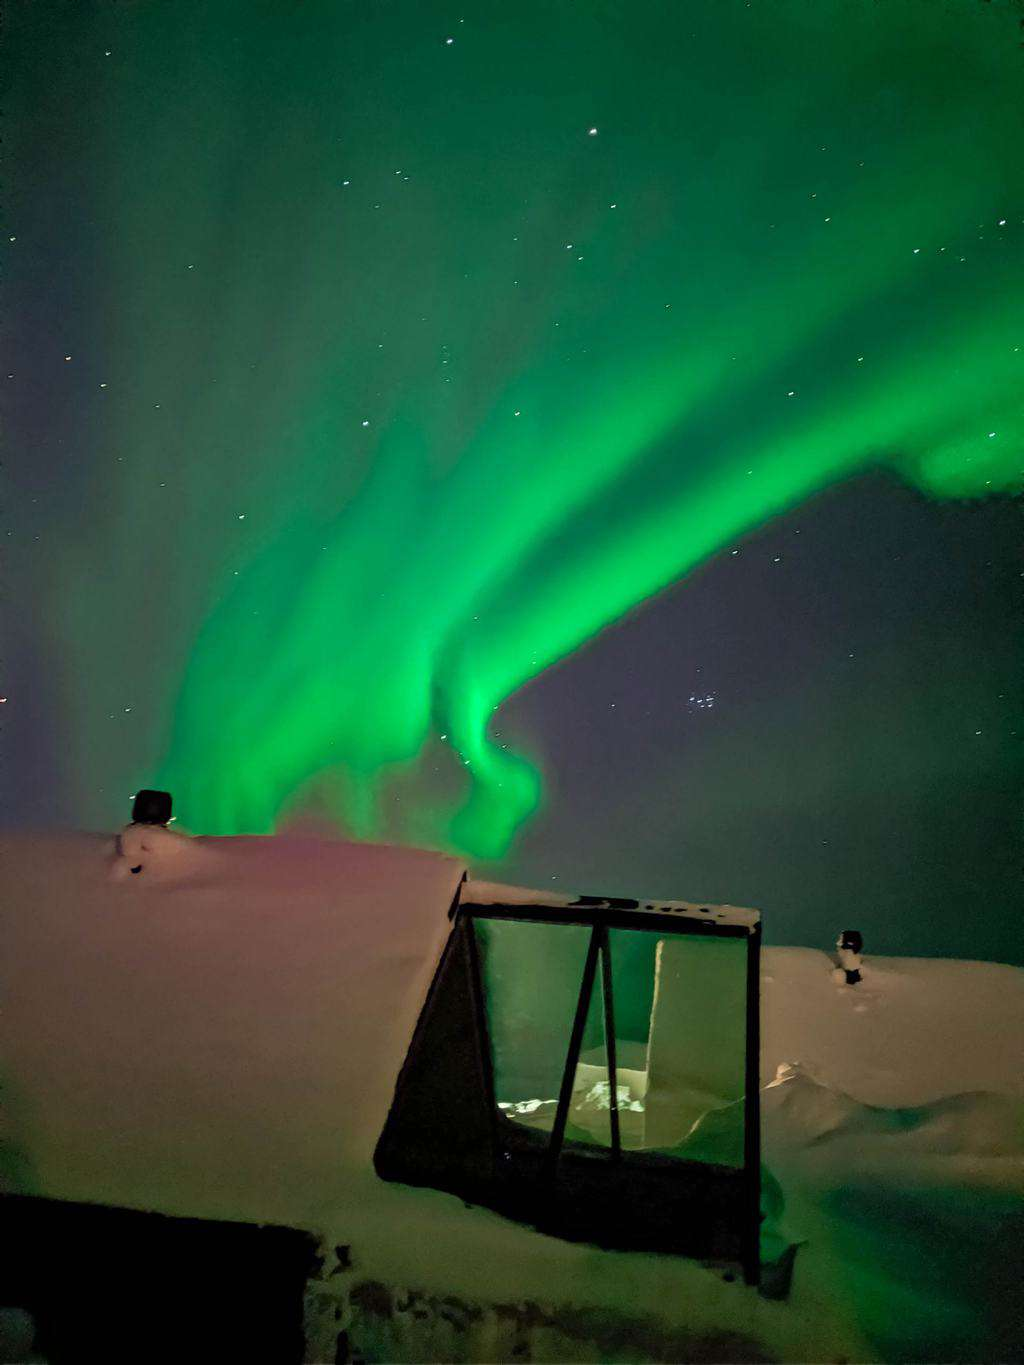 the green swirl of the Northern Lights above a building Finnish Lapland, Lapland destinations, Lapland Finland, Inghams